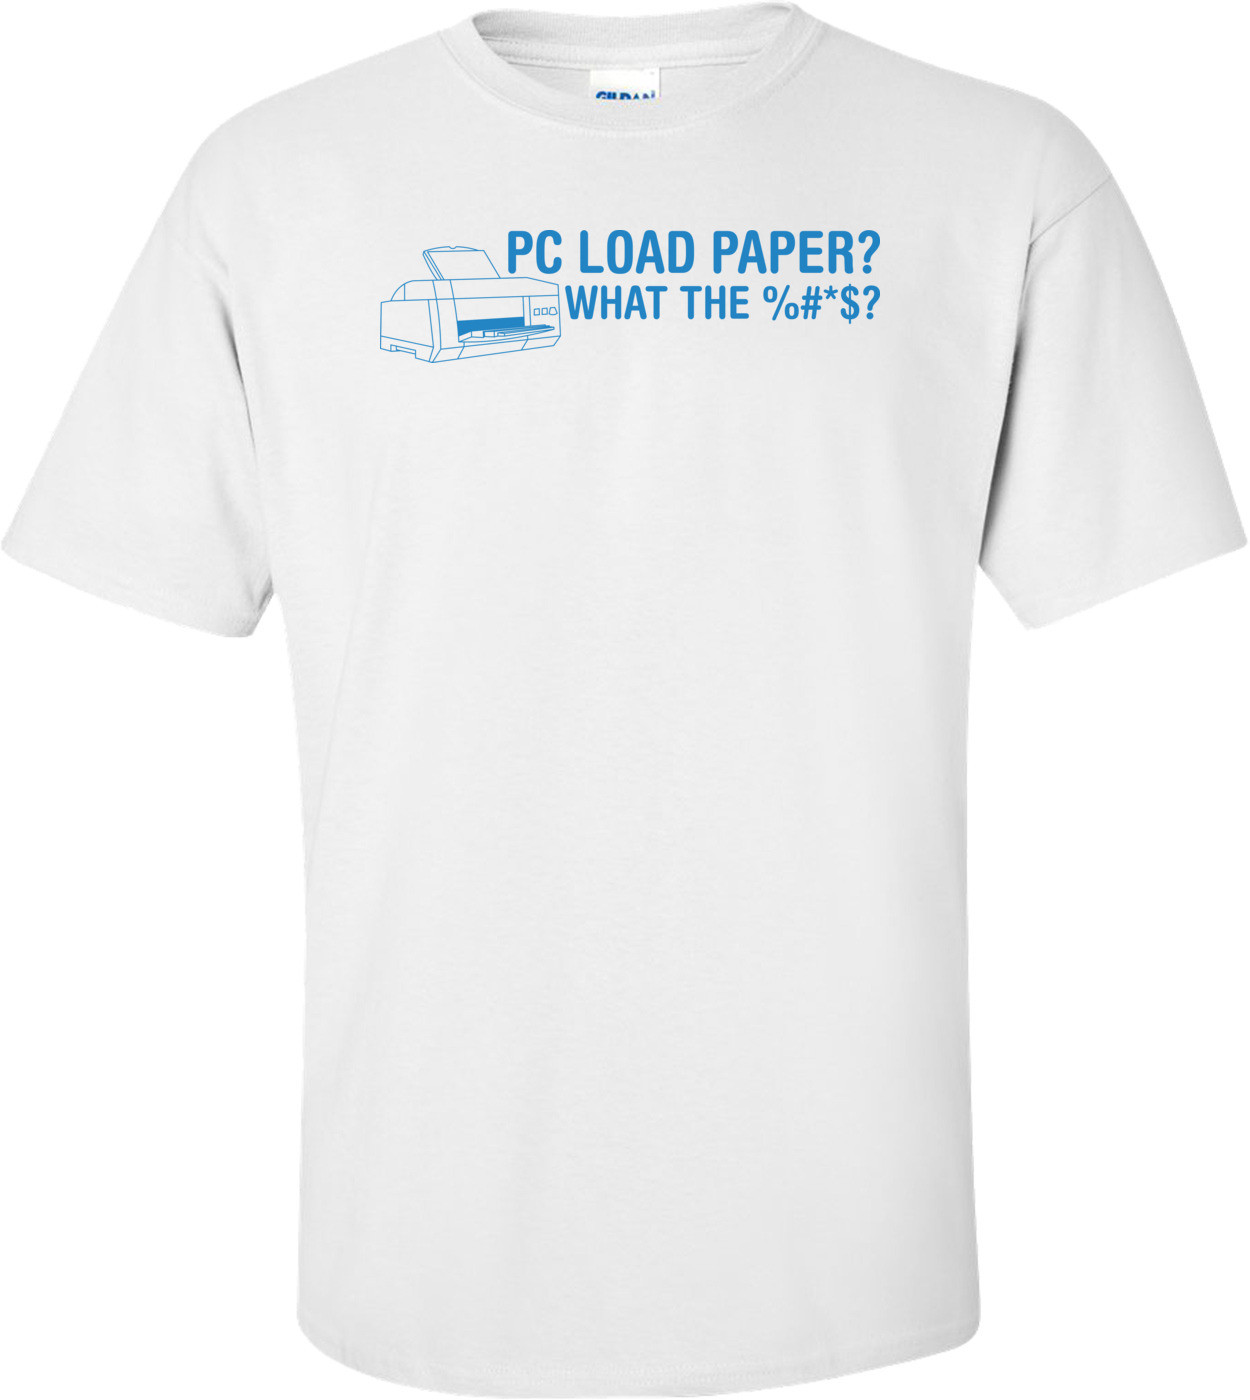 Pc Load Paper? What The %#*$? T-shirt